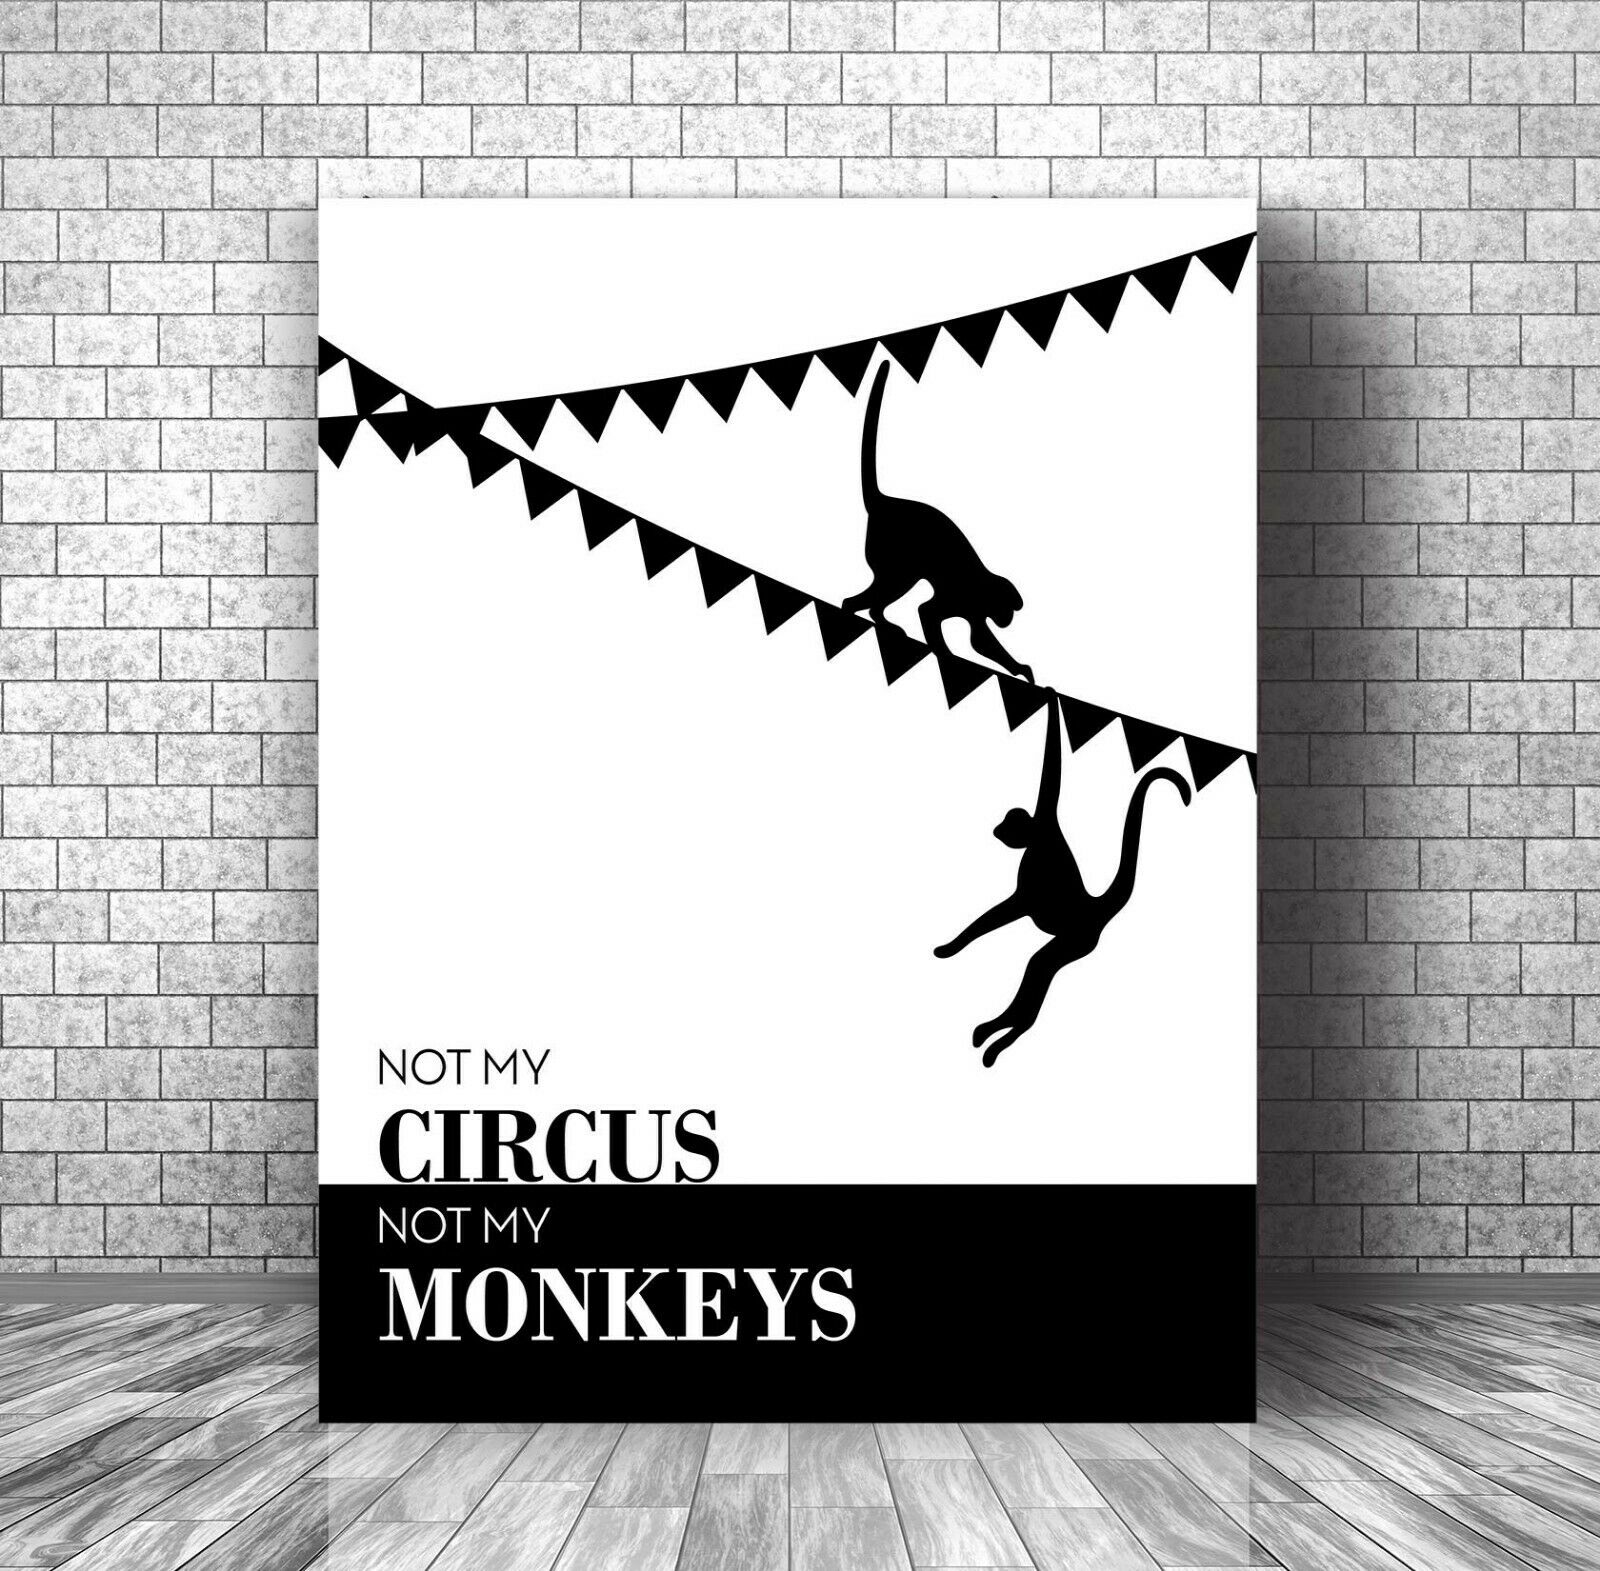 Inspirational Quote Saying Canvas Wall Art Decor - Not My Circus Not My Monkeys